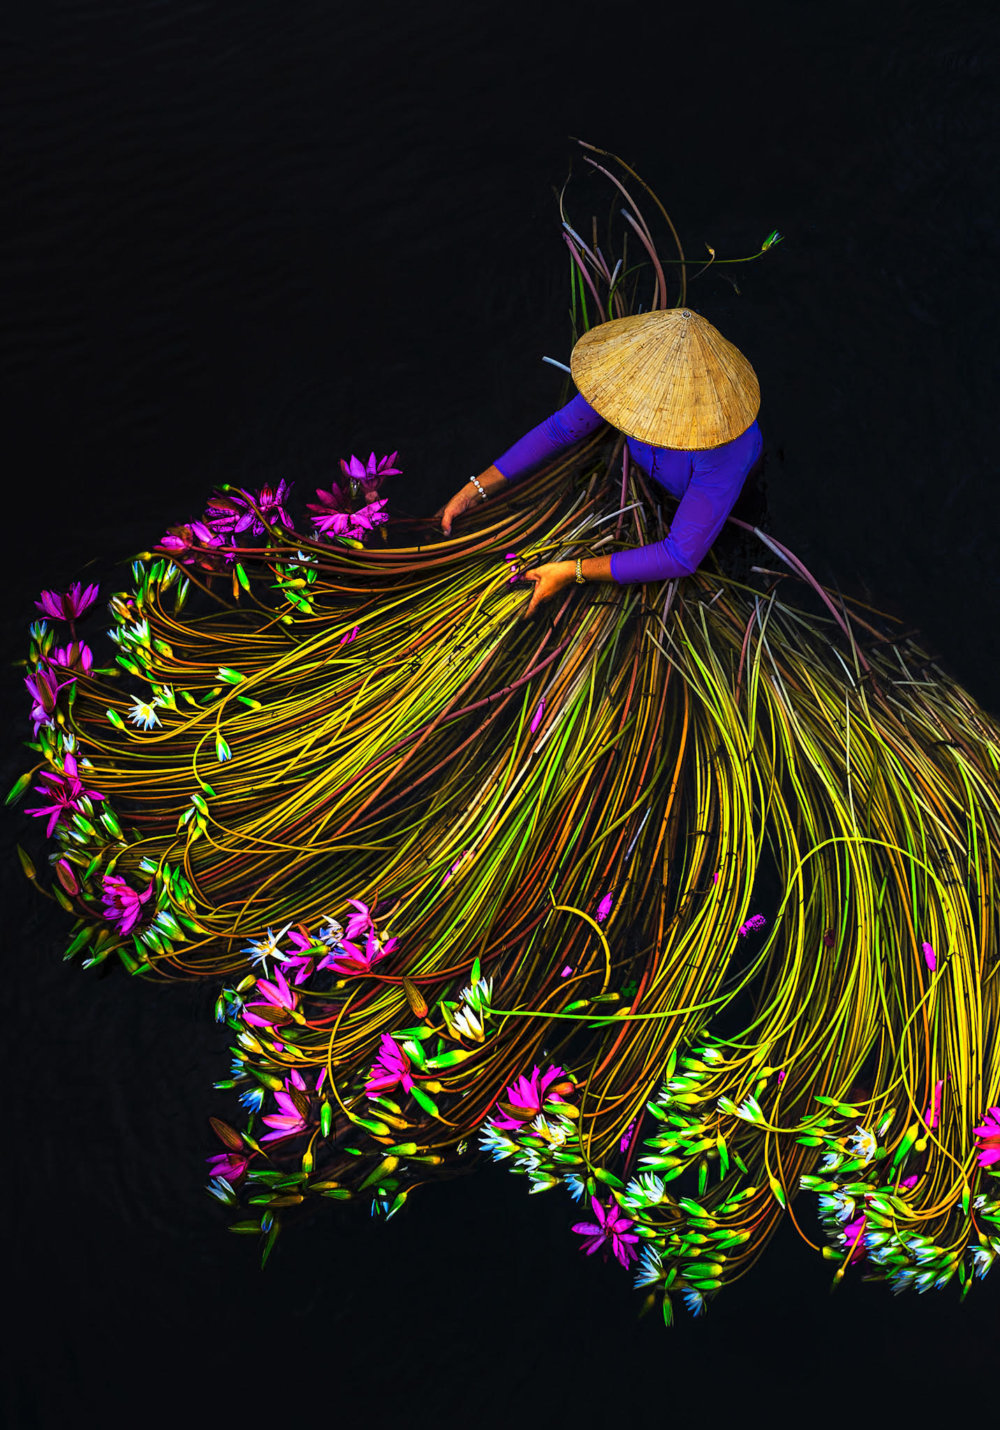 Beautiful Shots Of The Water Lily Harvest In Vietnam Captured By The Lens Of Pham Huy Trung 1